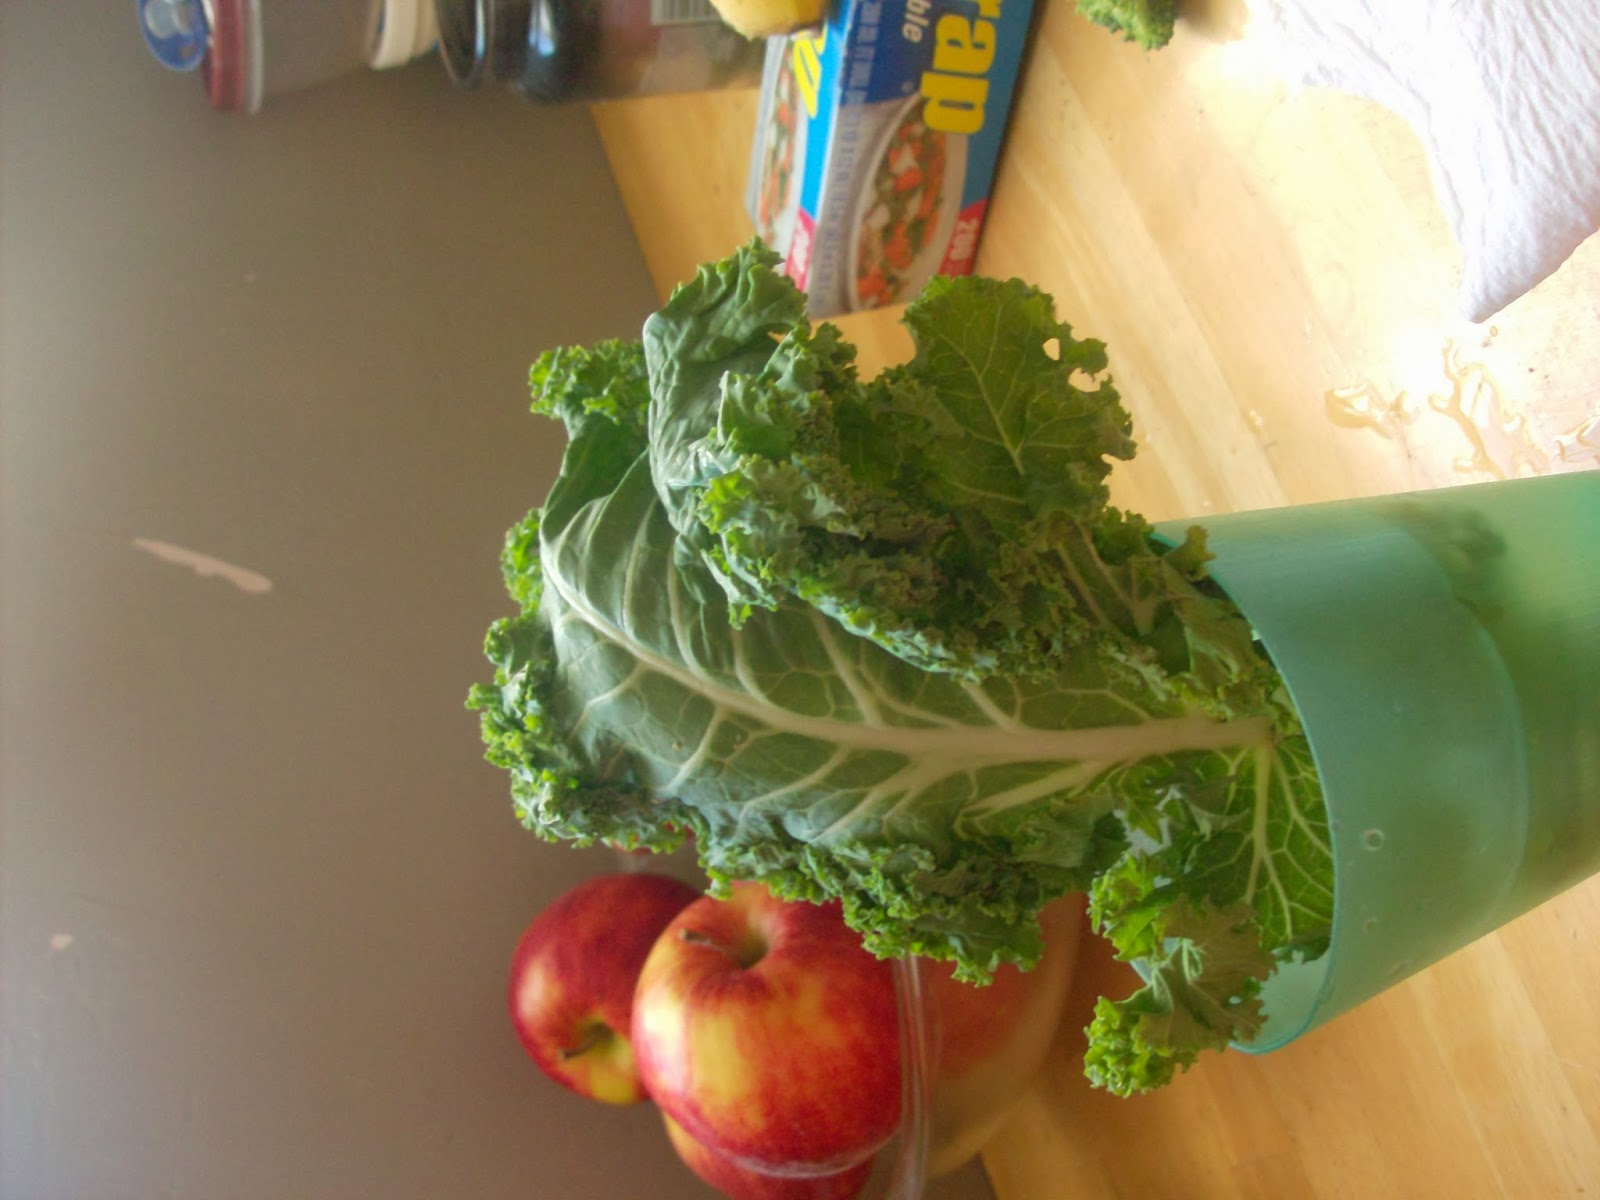 Eating Healthy On A Tight Budget Bringing Produce Back To